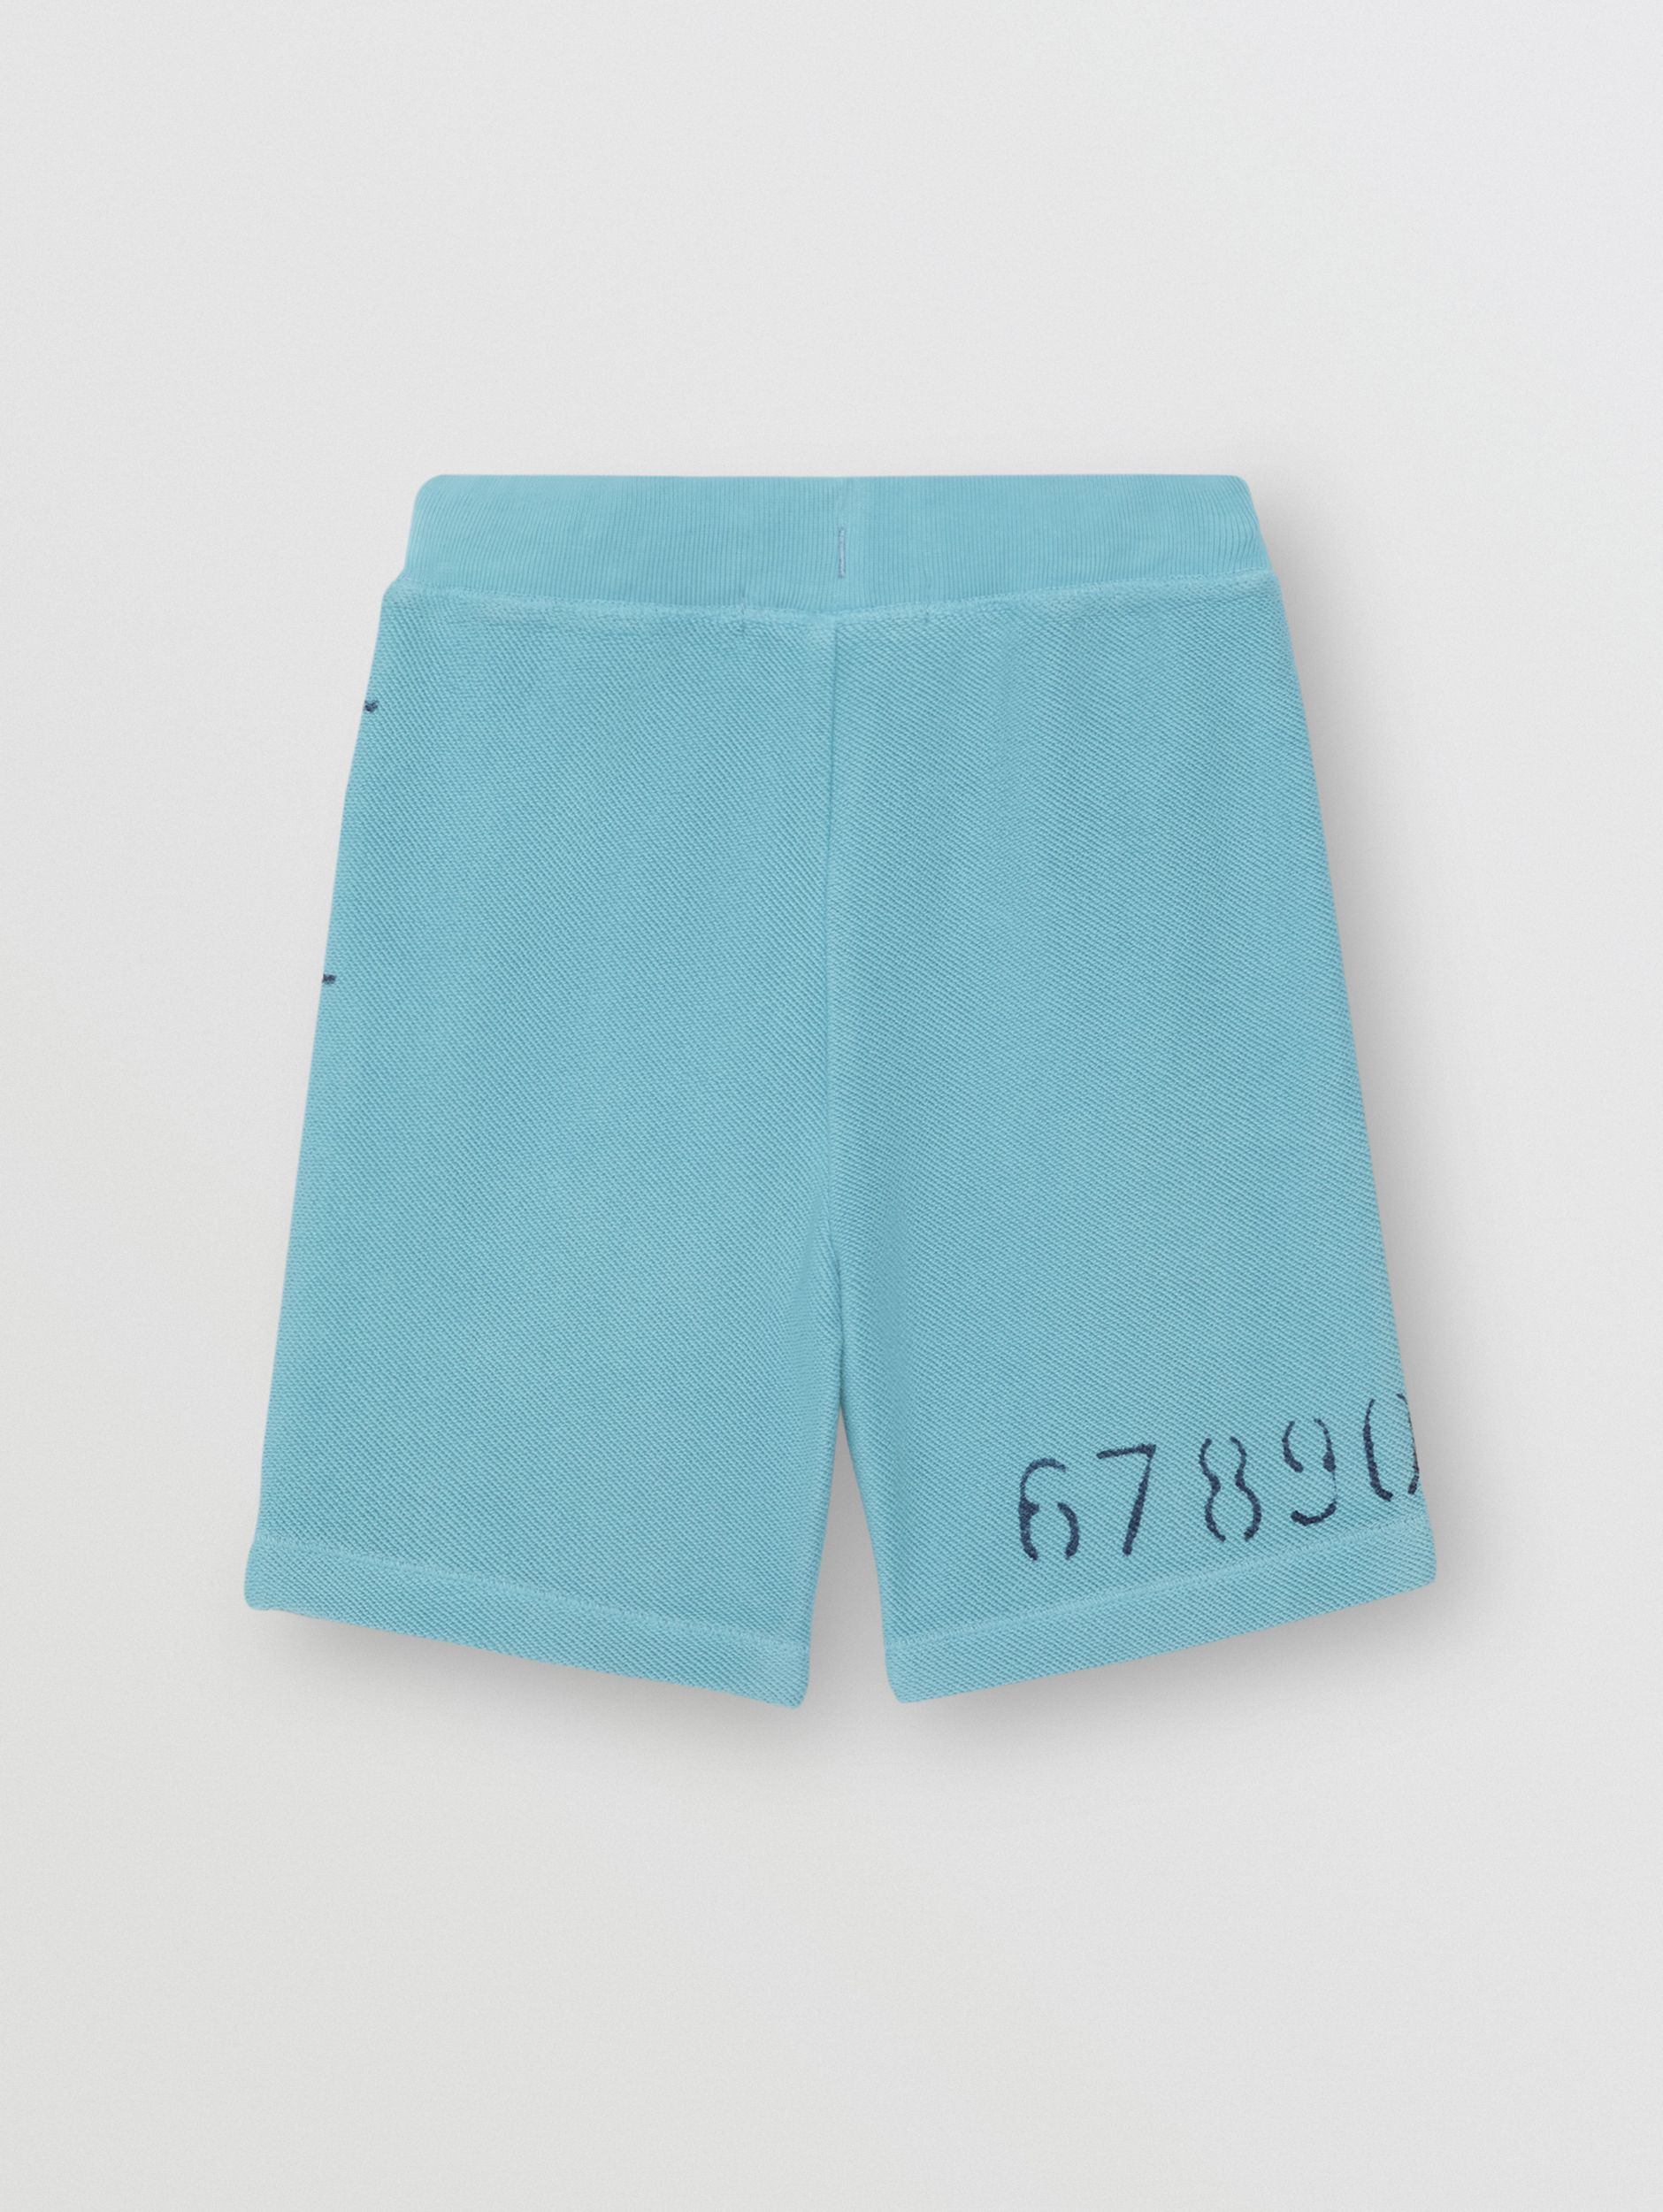 Stencil Logo Print Cotton Drawcord Shorts in Bright Cyan Blue - Children | Burberry - 4